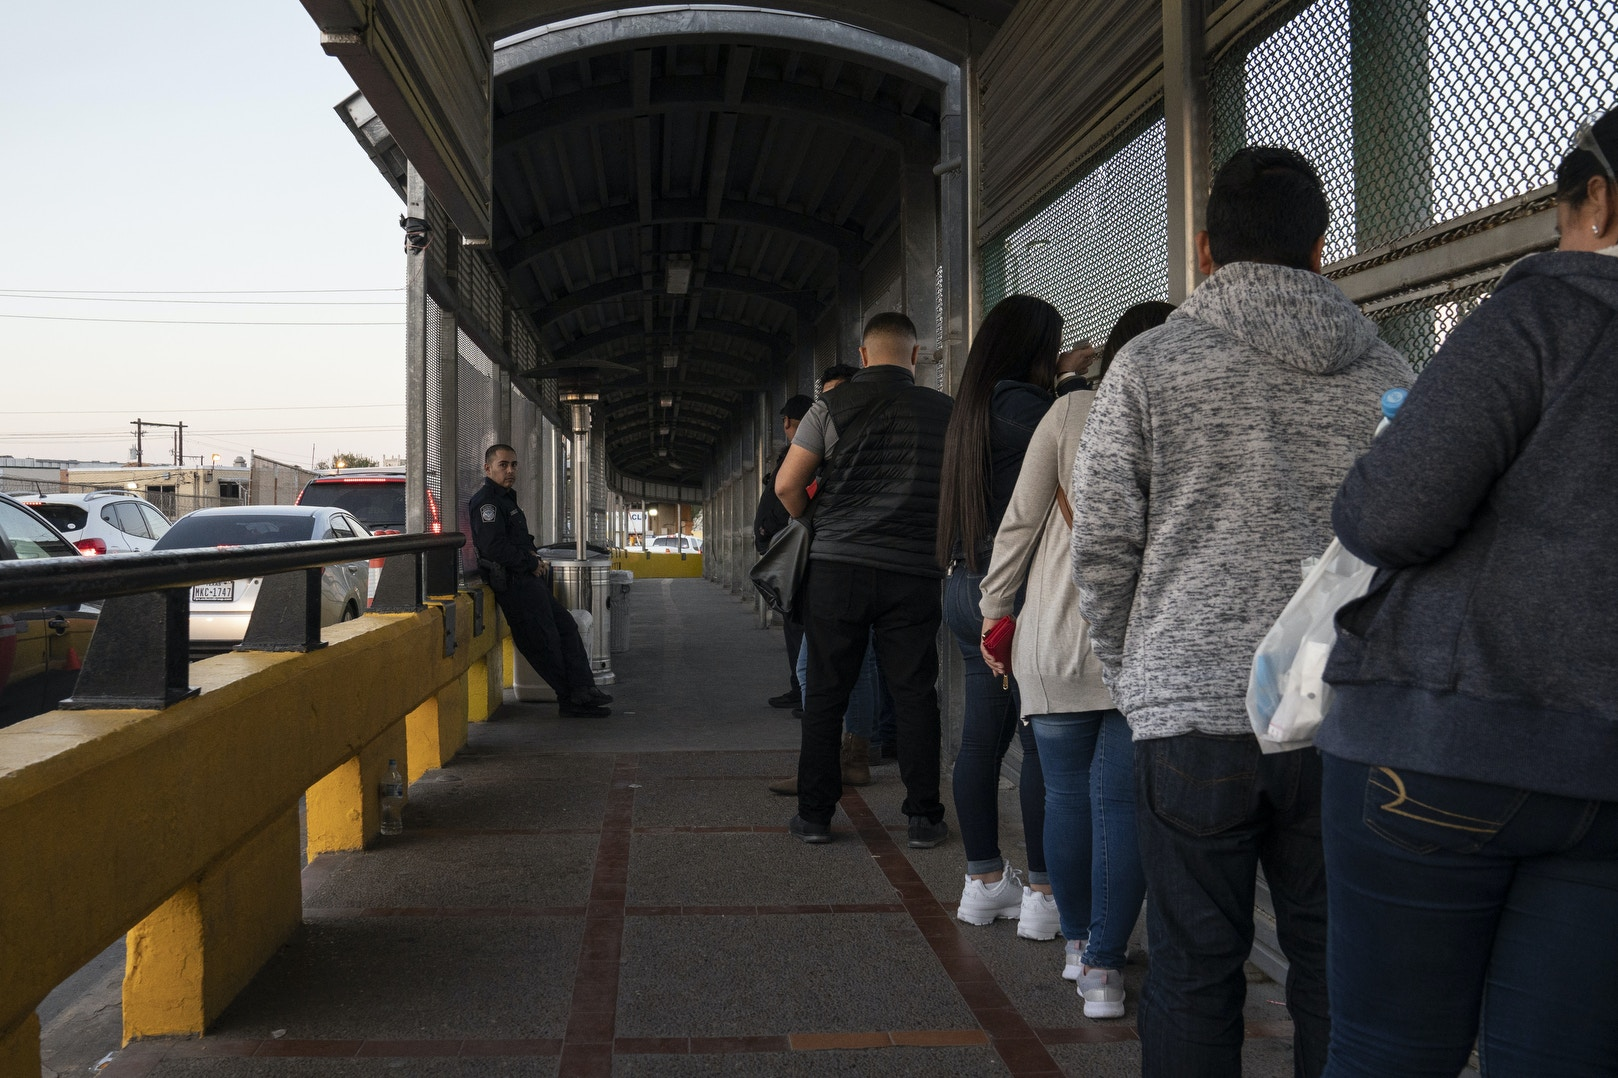 A U.S. Customs and Border Protection agent standing in the U.S. is seen from the Mexican side of the international bridge as people wait to be allowed to cross into the country in Matamoros, Mexico on Feb. 13, 2020.